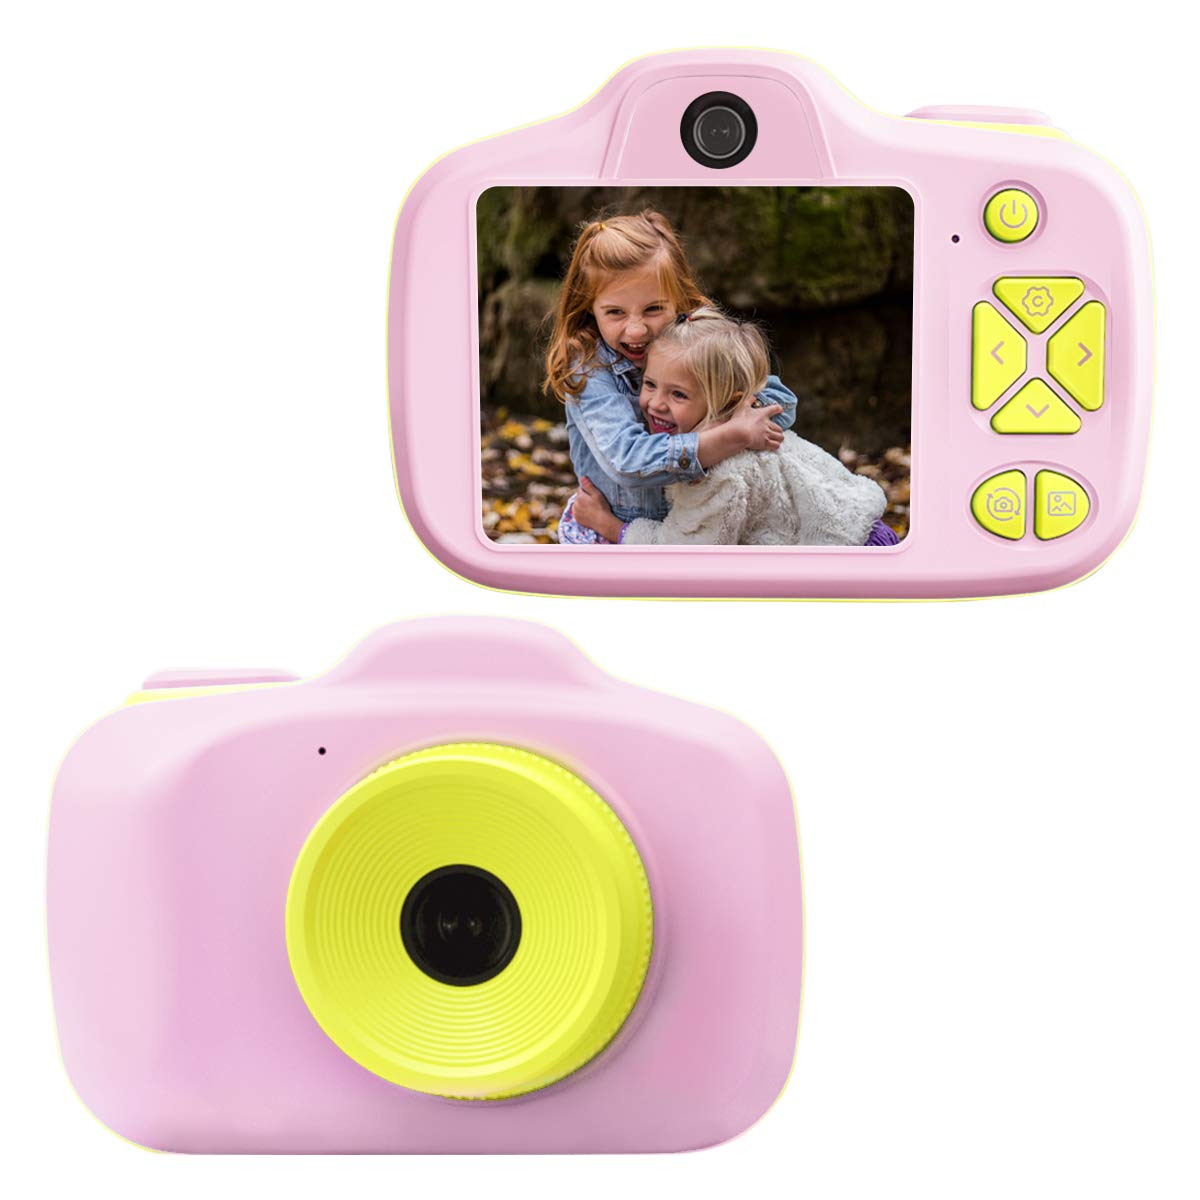 Joytrip Video Camera for Kids Gifts HD 2.3 Inches Screen 8MP Kids Digital Camera for Girls Shockproof Children Selfie Toy Camera Mini Child Camcorder for Age 3-10 with Safe Material (Pink-Yellow)